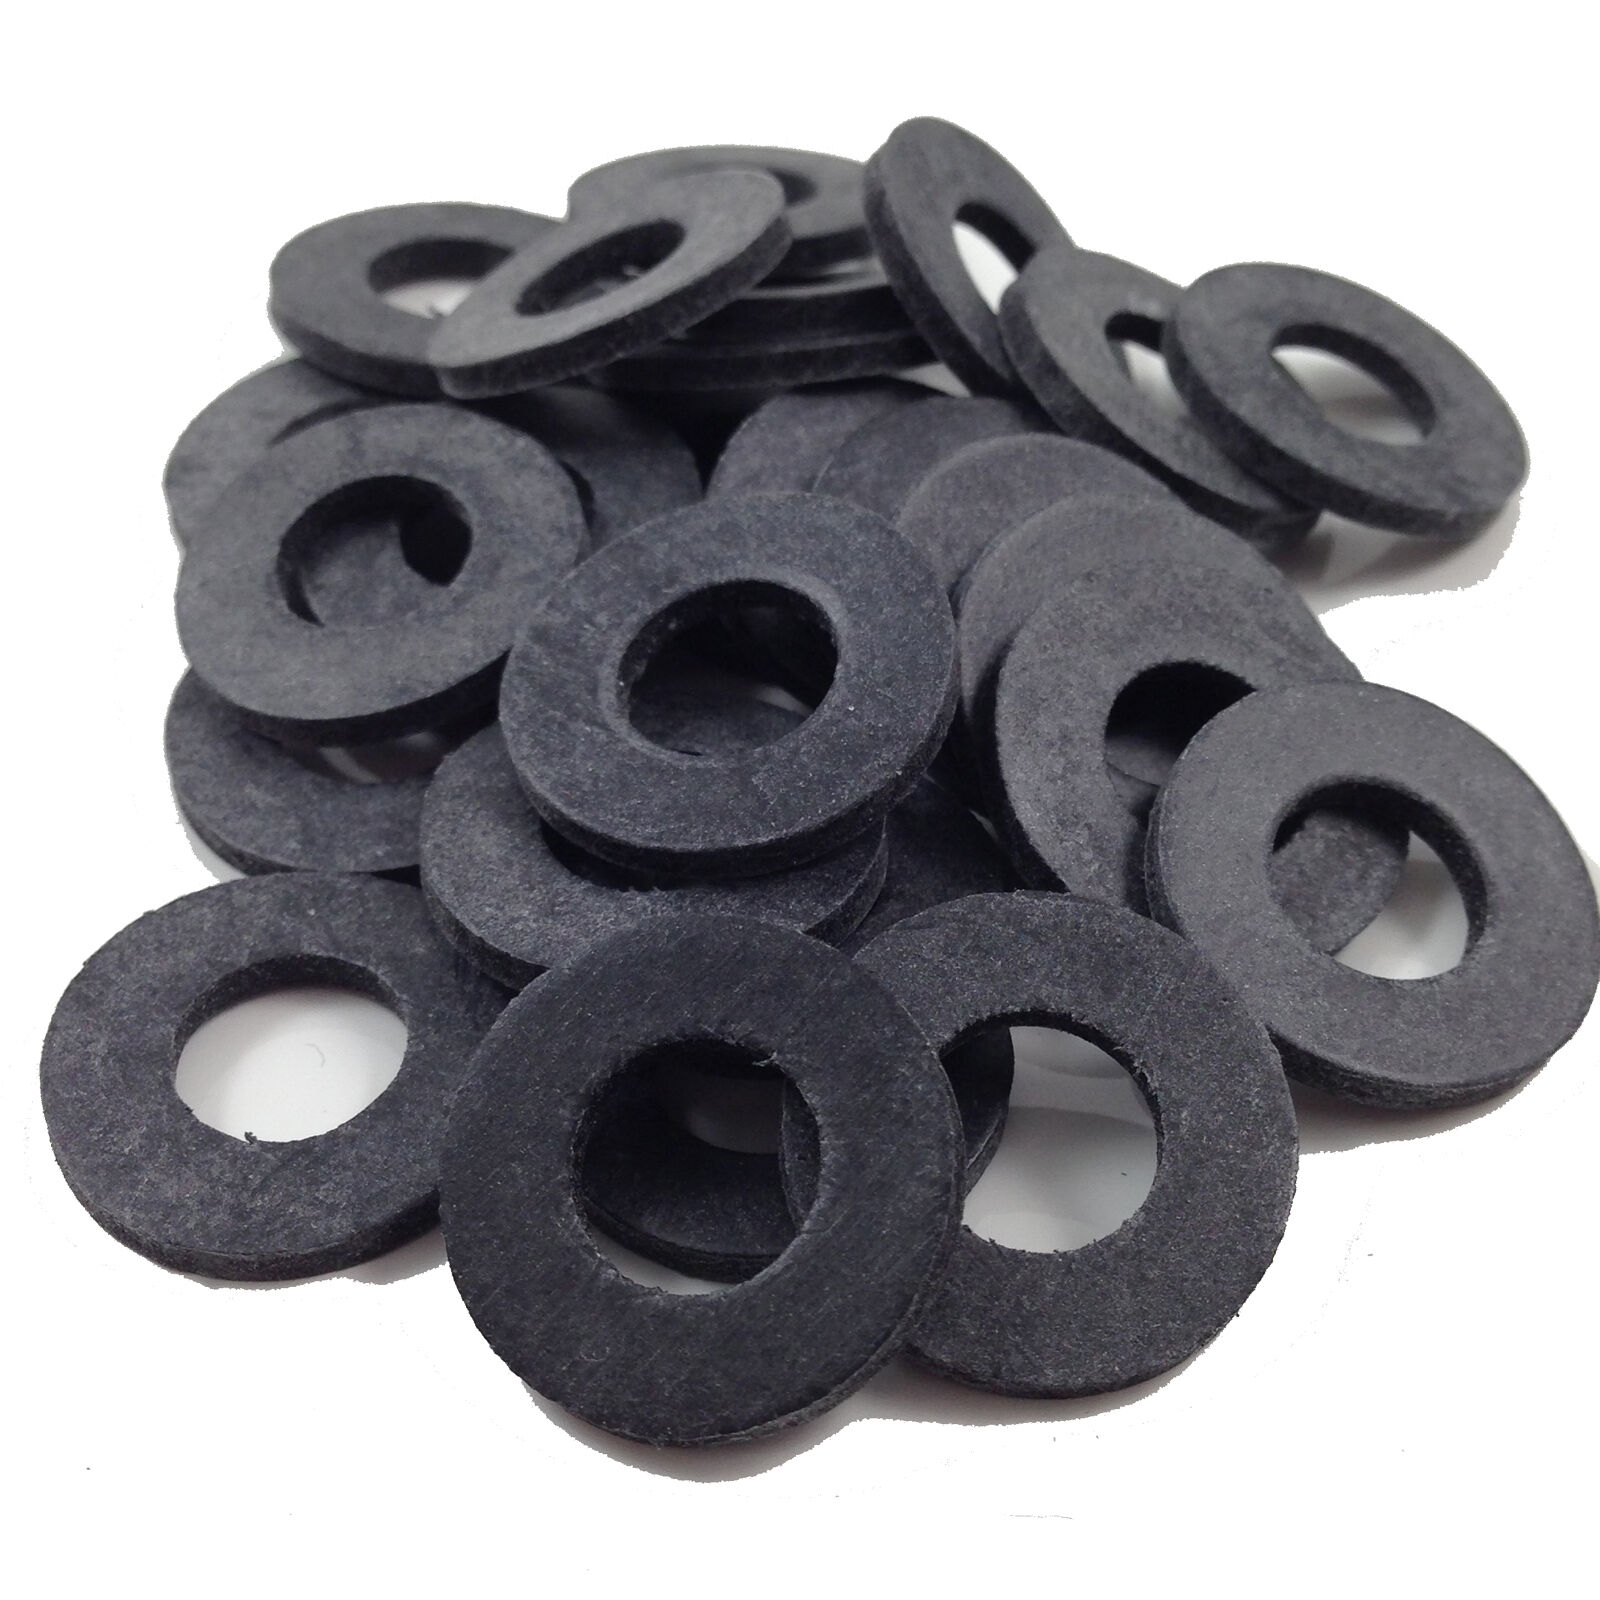 C:\Users\Bala\Desktop\rubber washers.jpg